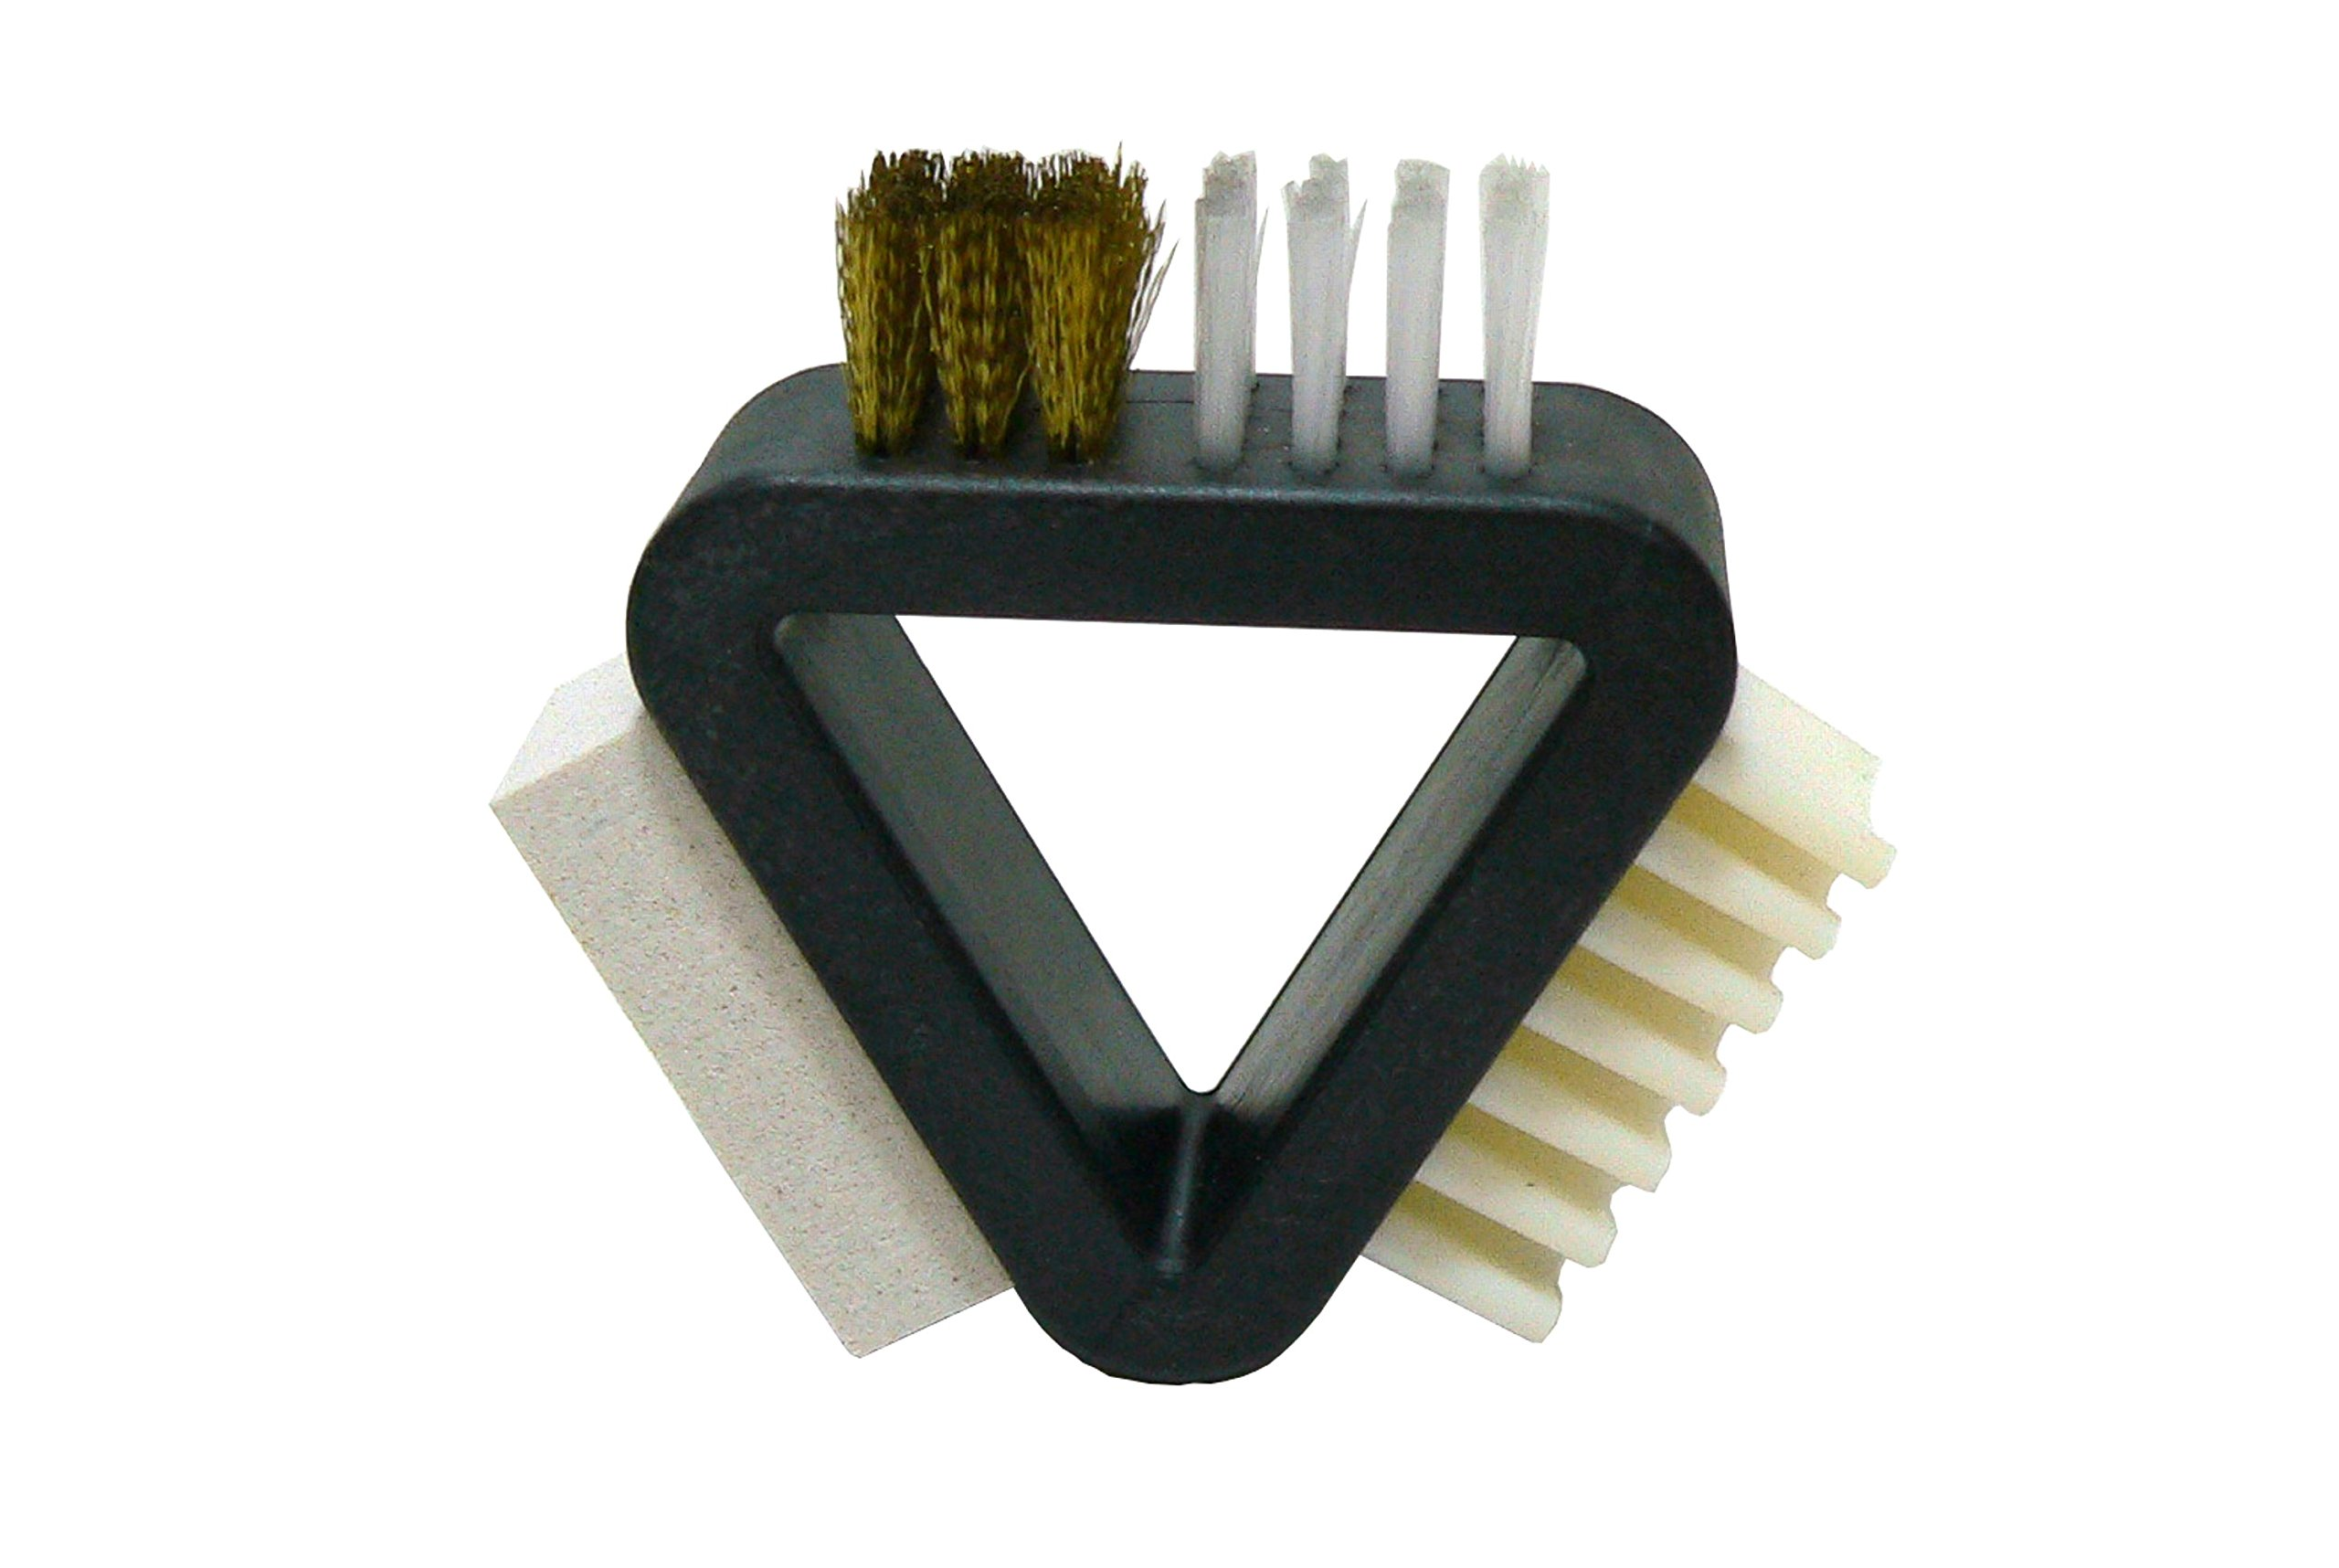 Cleaning Suede Brush - 3 Way Remover for Shoes, Boots, Couches, Purse, Bags, Jackets, etc.